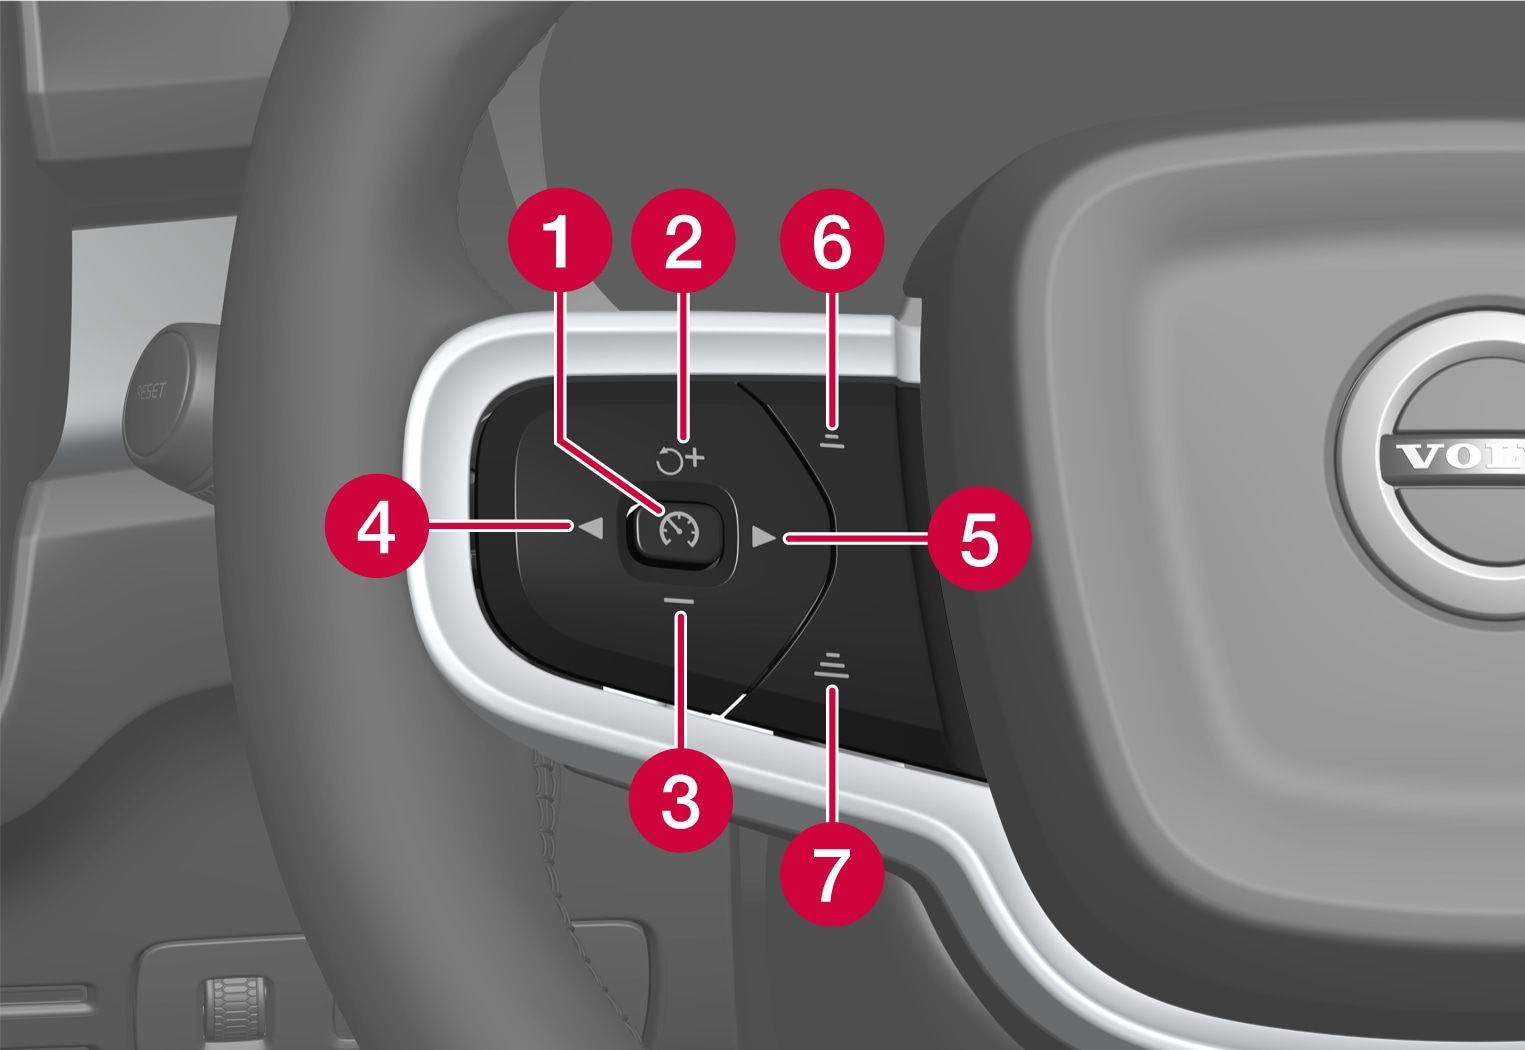 Px-2037-Cruise Control functions steering wheel buttons